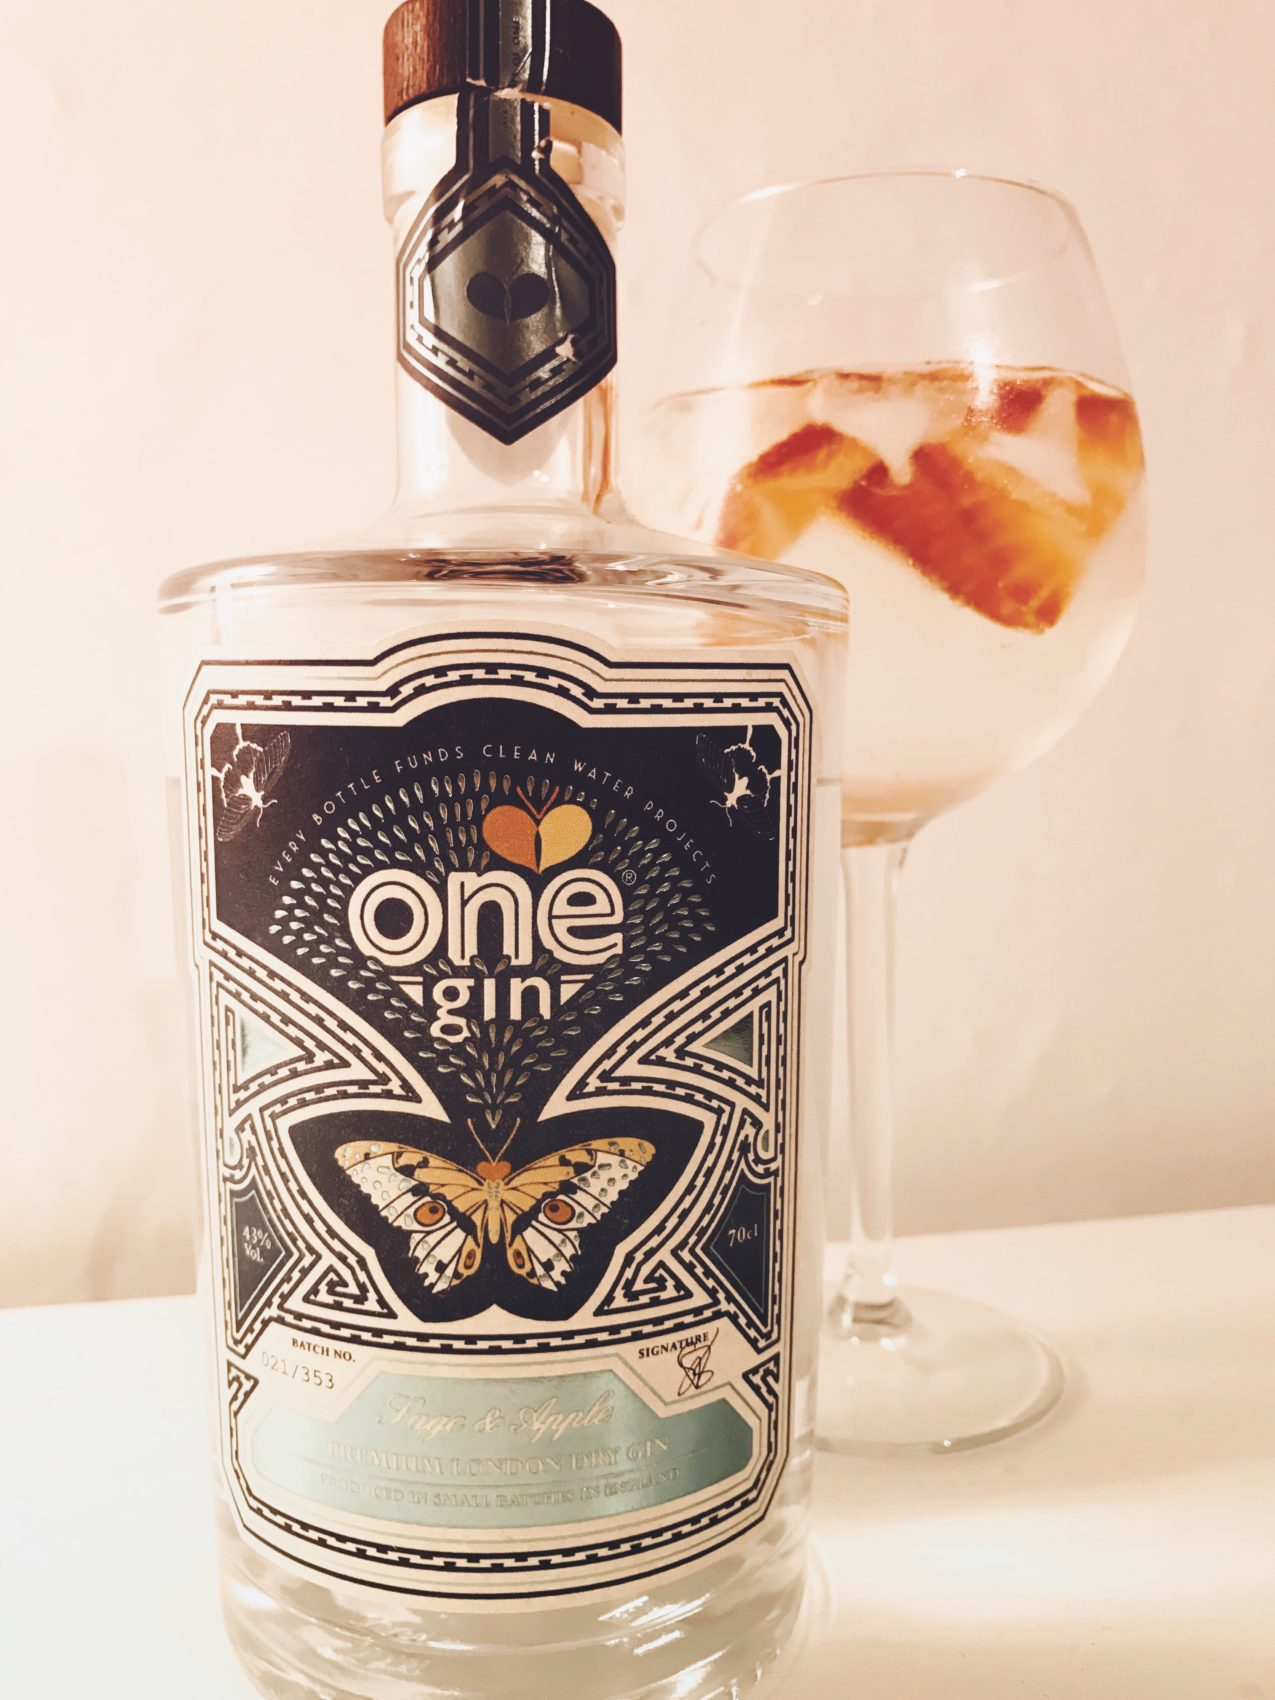 One gin, sage & apple, fruity, review, strawberries, goblet, ice, pretty bottle, butterfly